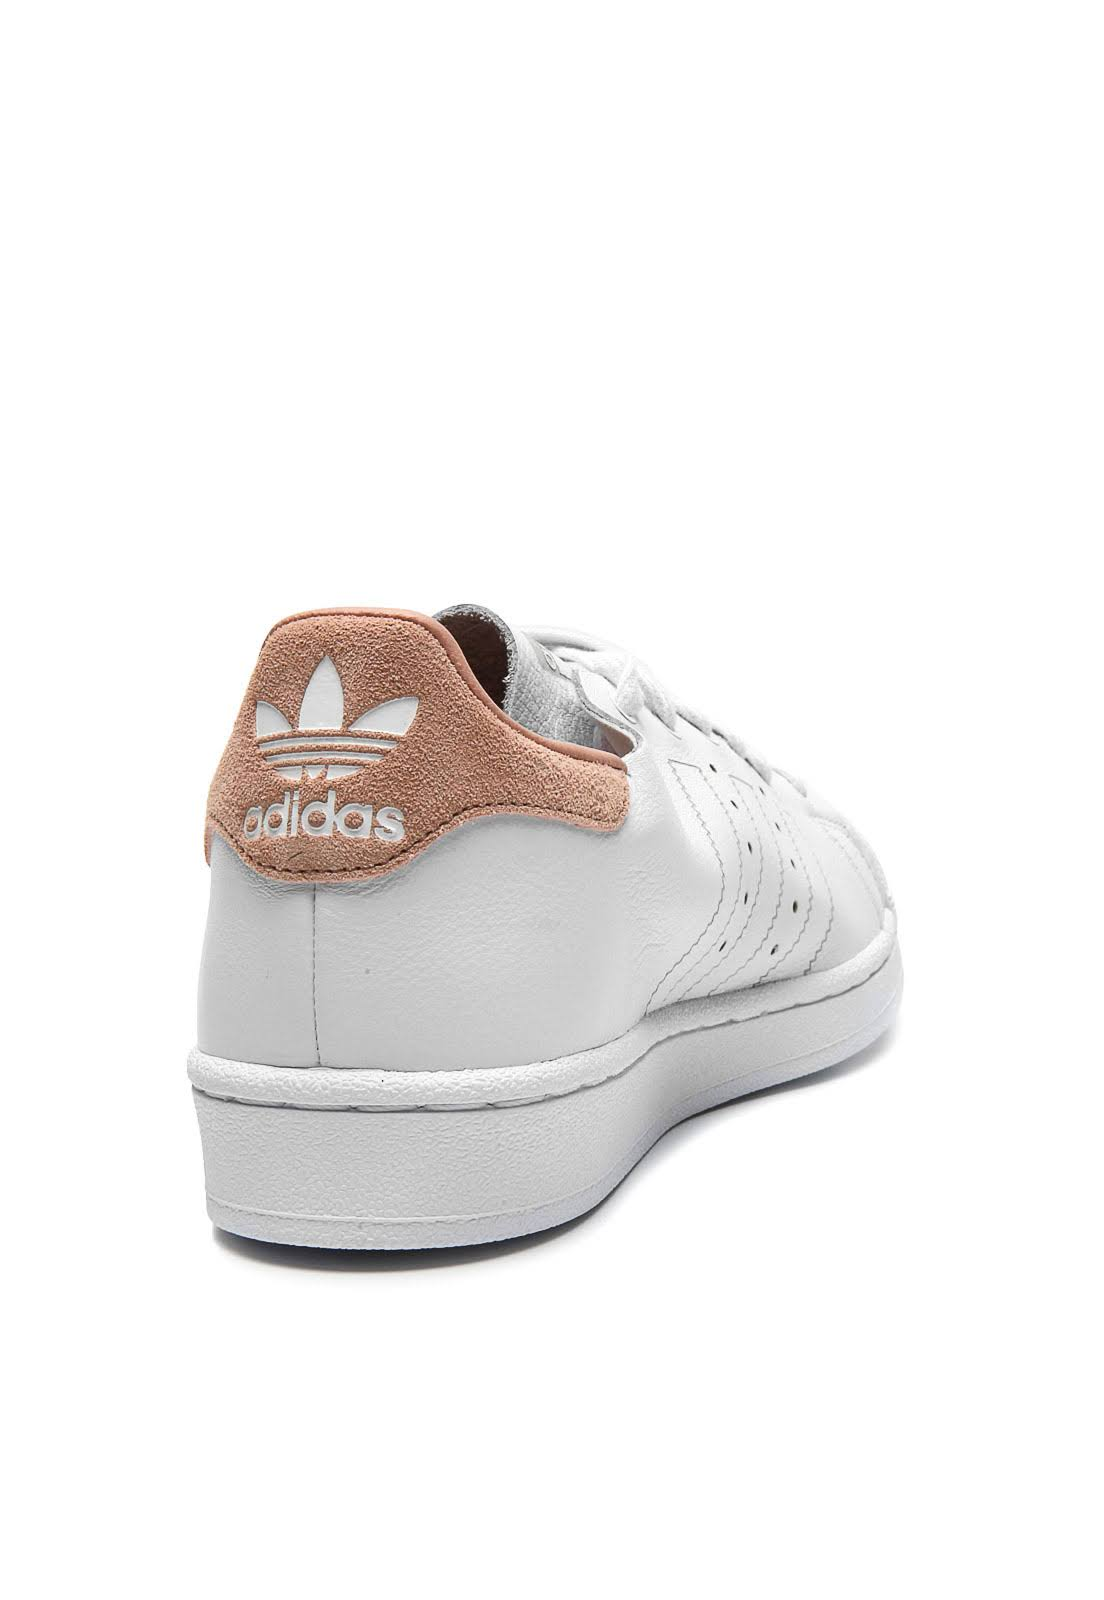 coral Donna Da Decon Adidas Superstar White ZiuOPkXT